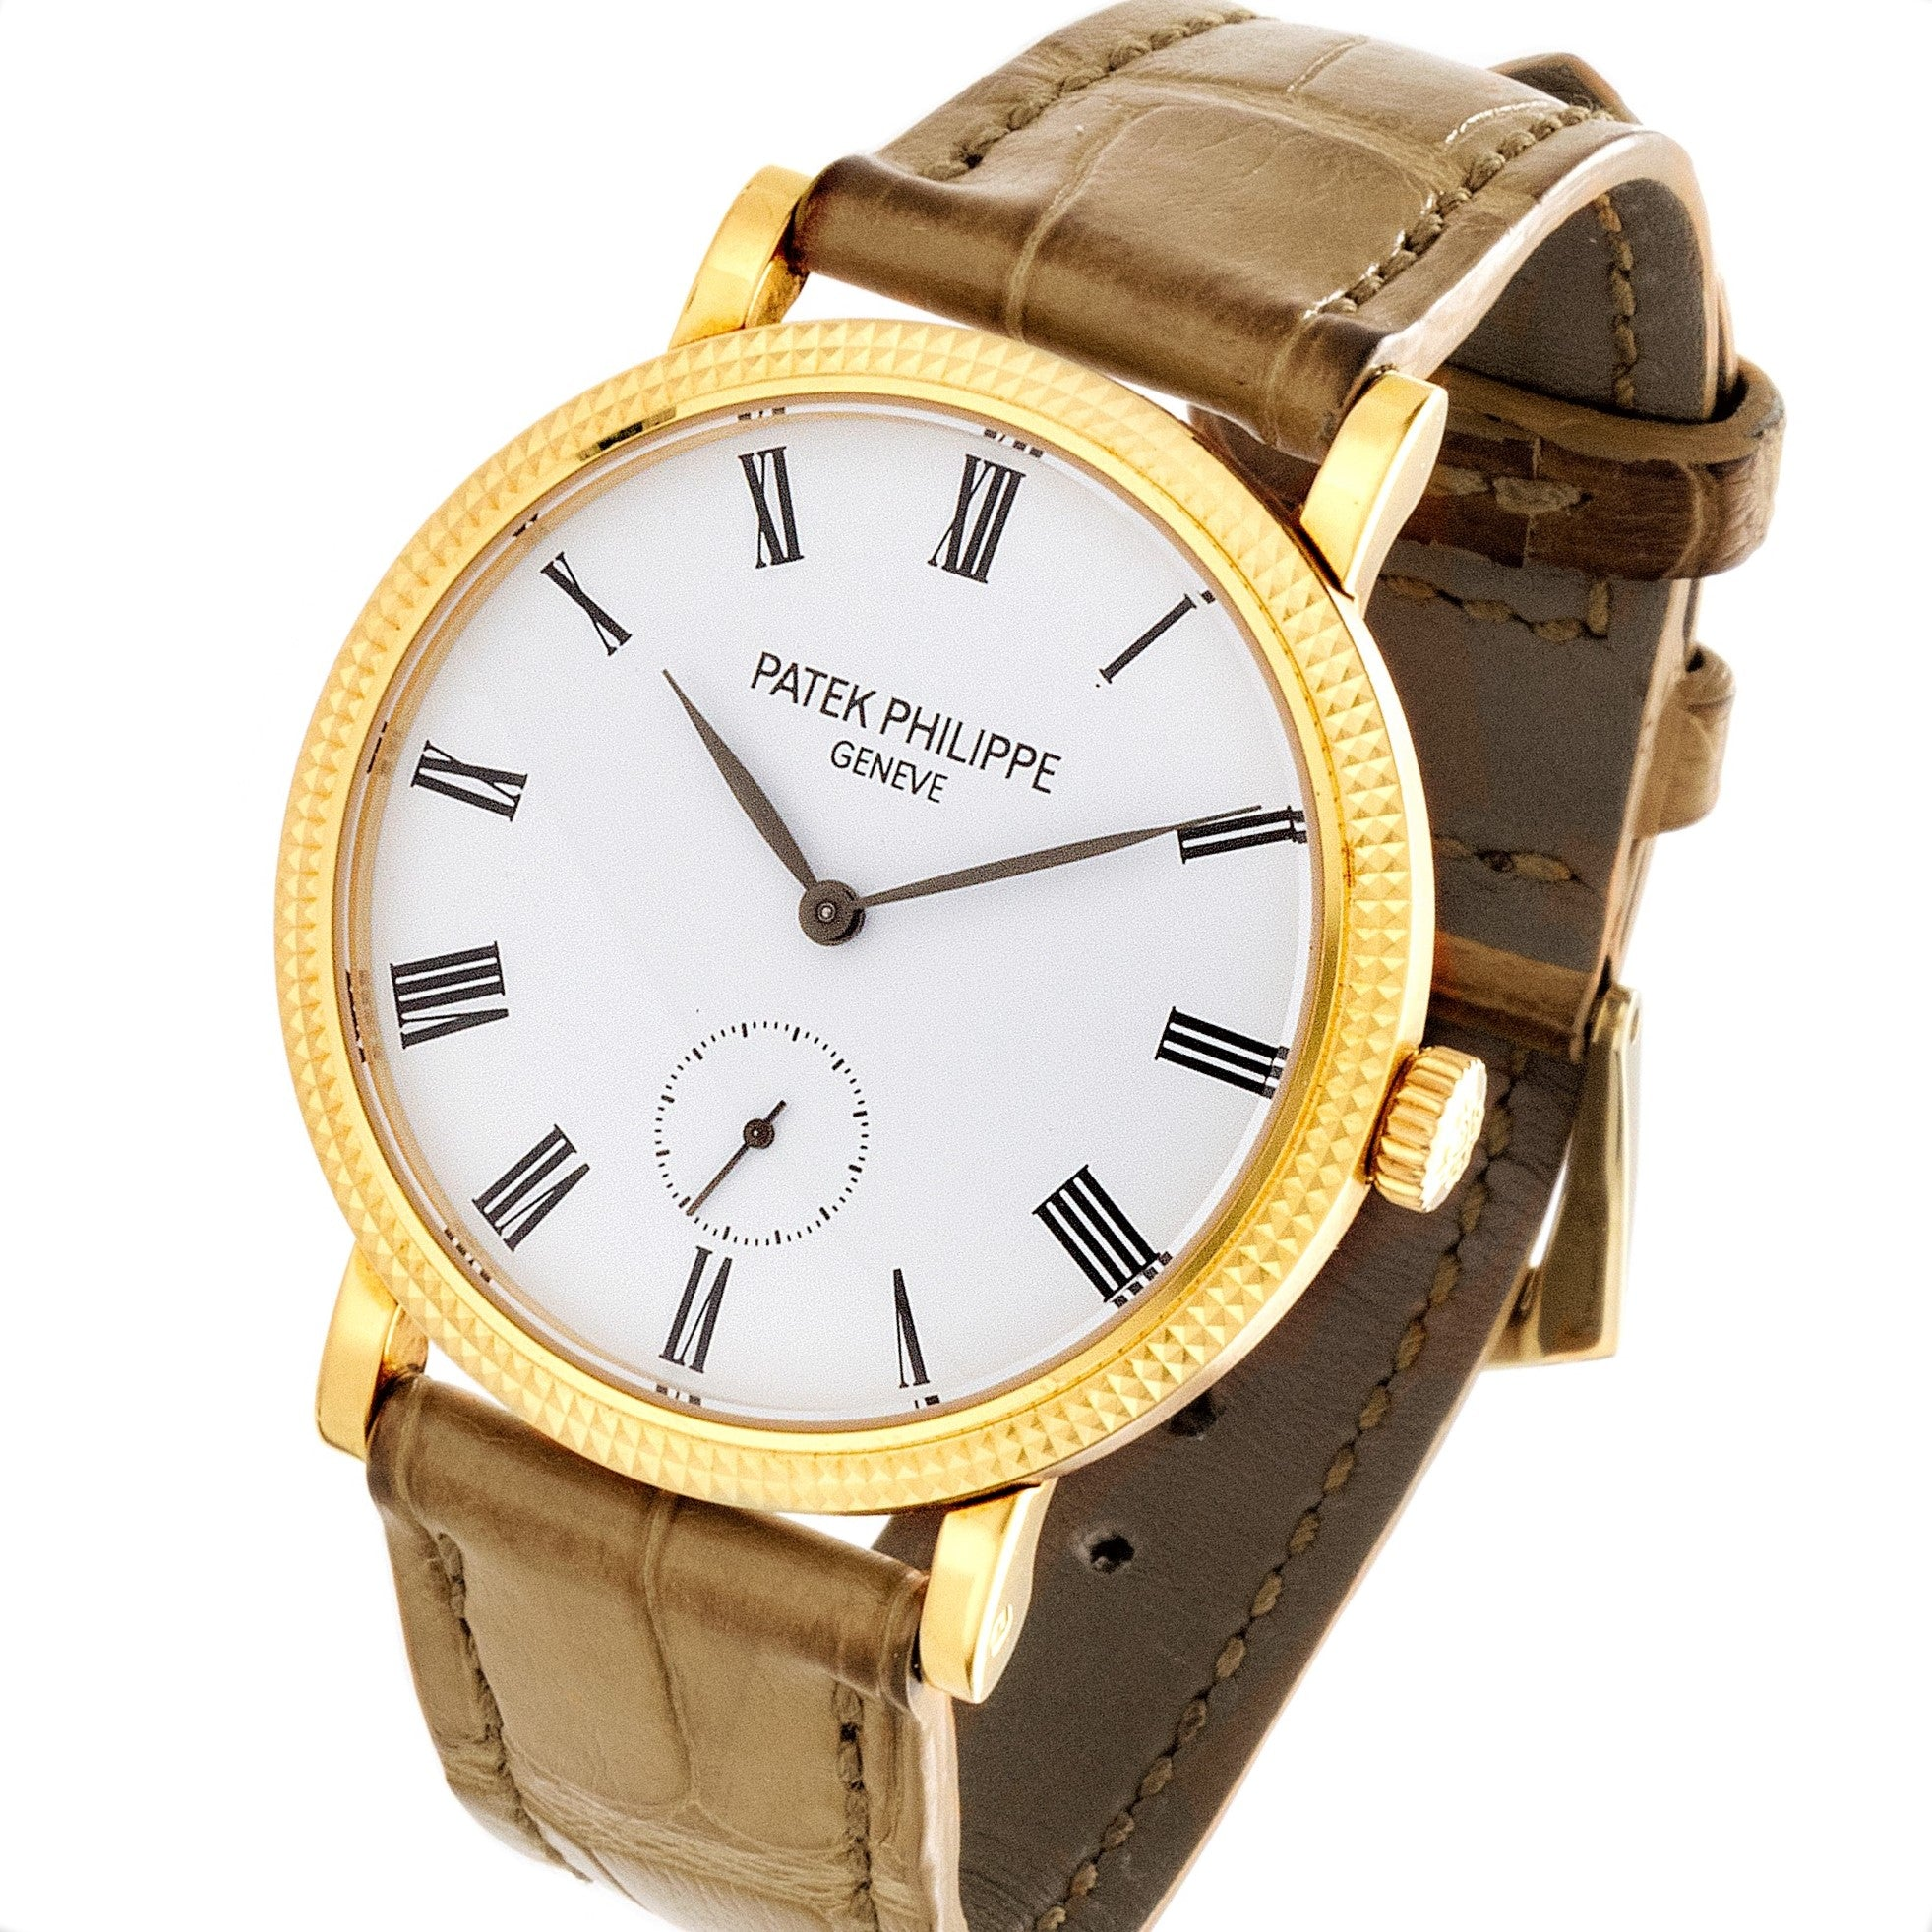 Patek Philippe 7119J Ladies Calatrava Watch C. 2014